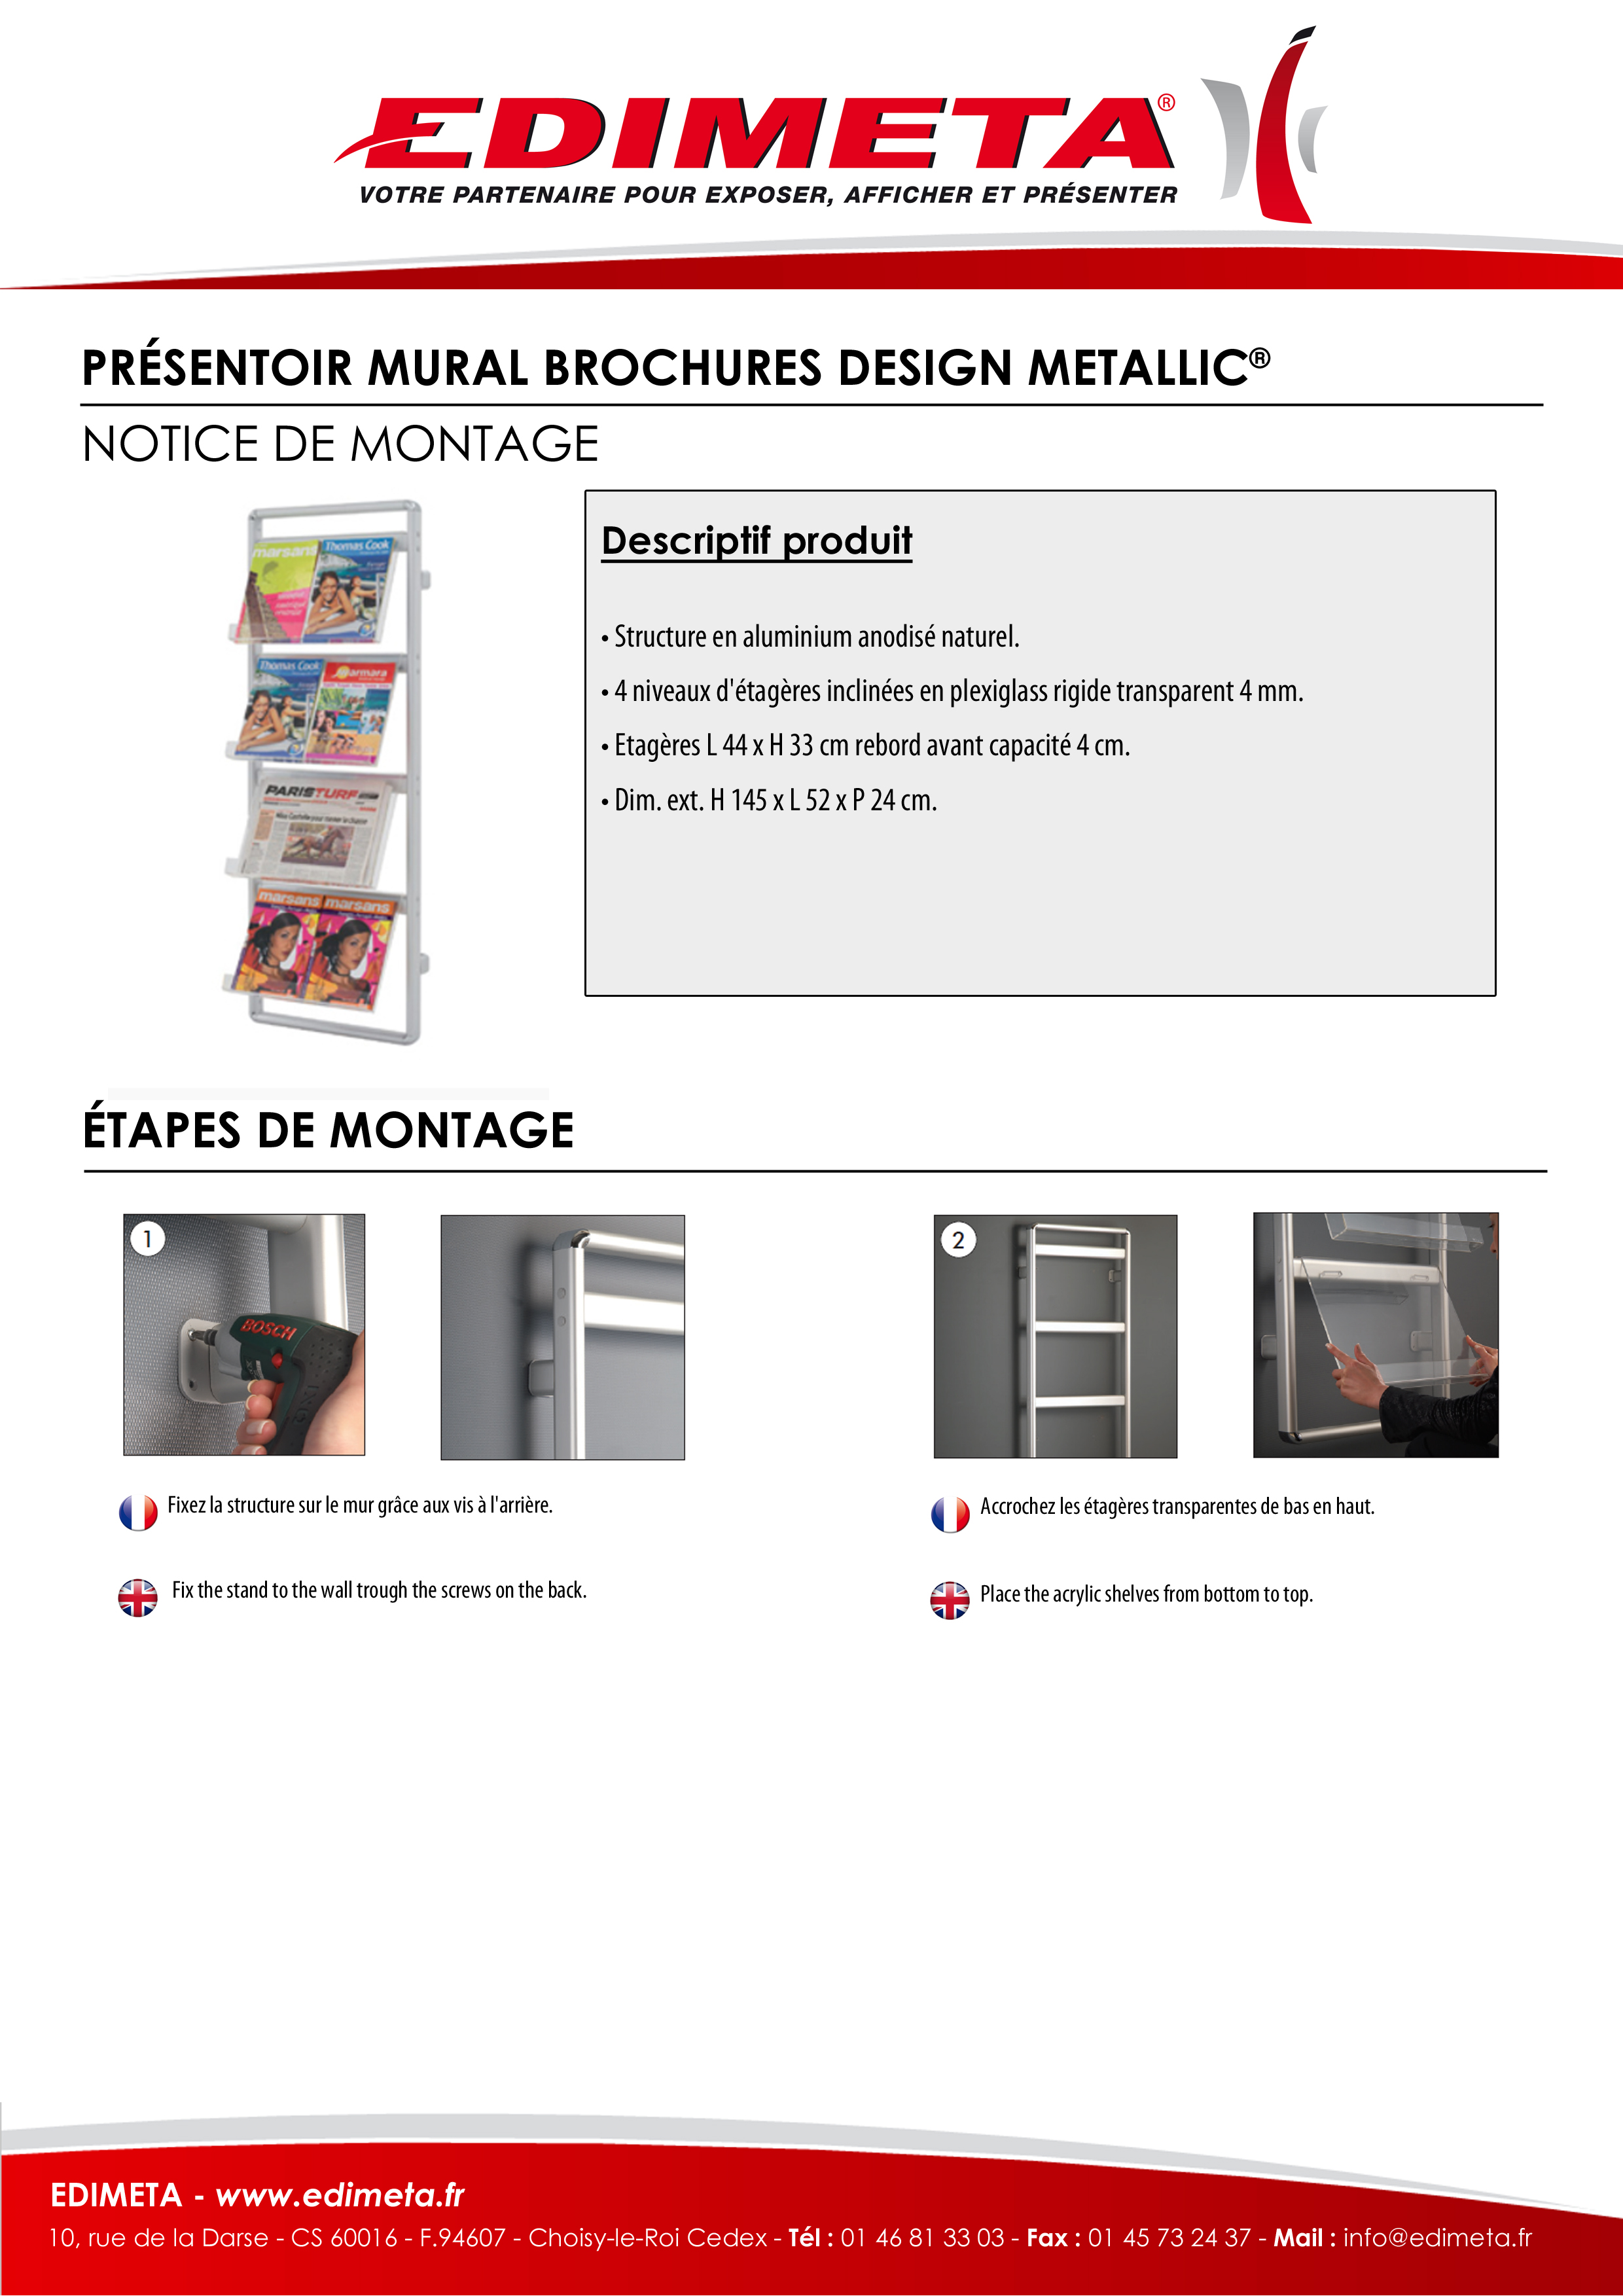 NOTICE DE MONTAGE : PRÉSENTOIR MURAL BROCHURES DESIGN METALLIC®